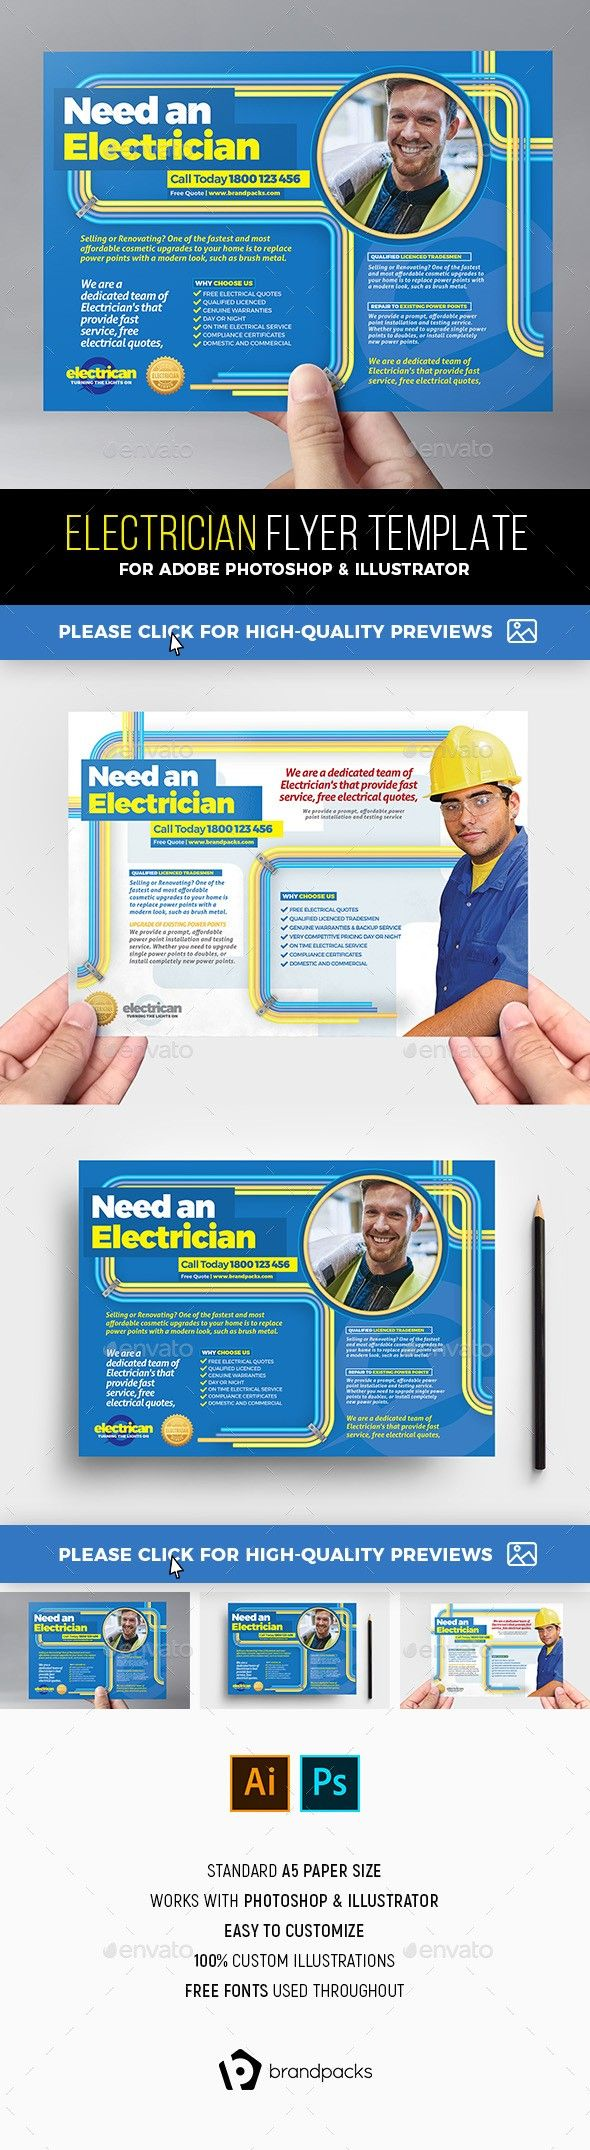 A5 Ad Ad Template Ai Brandpacks Builder Builders Construction